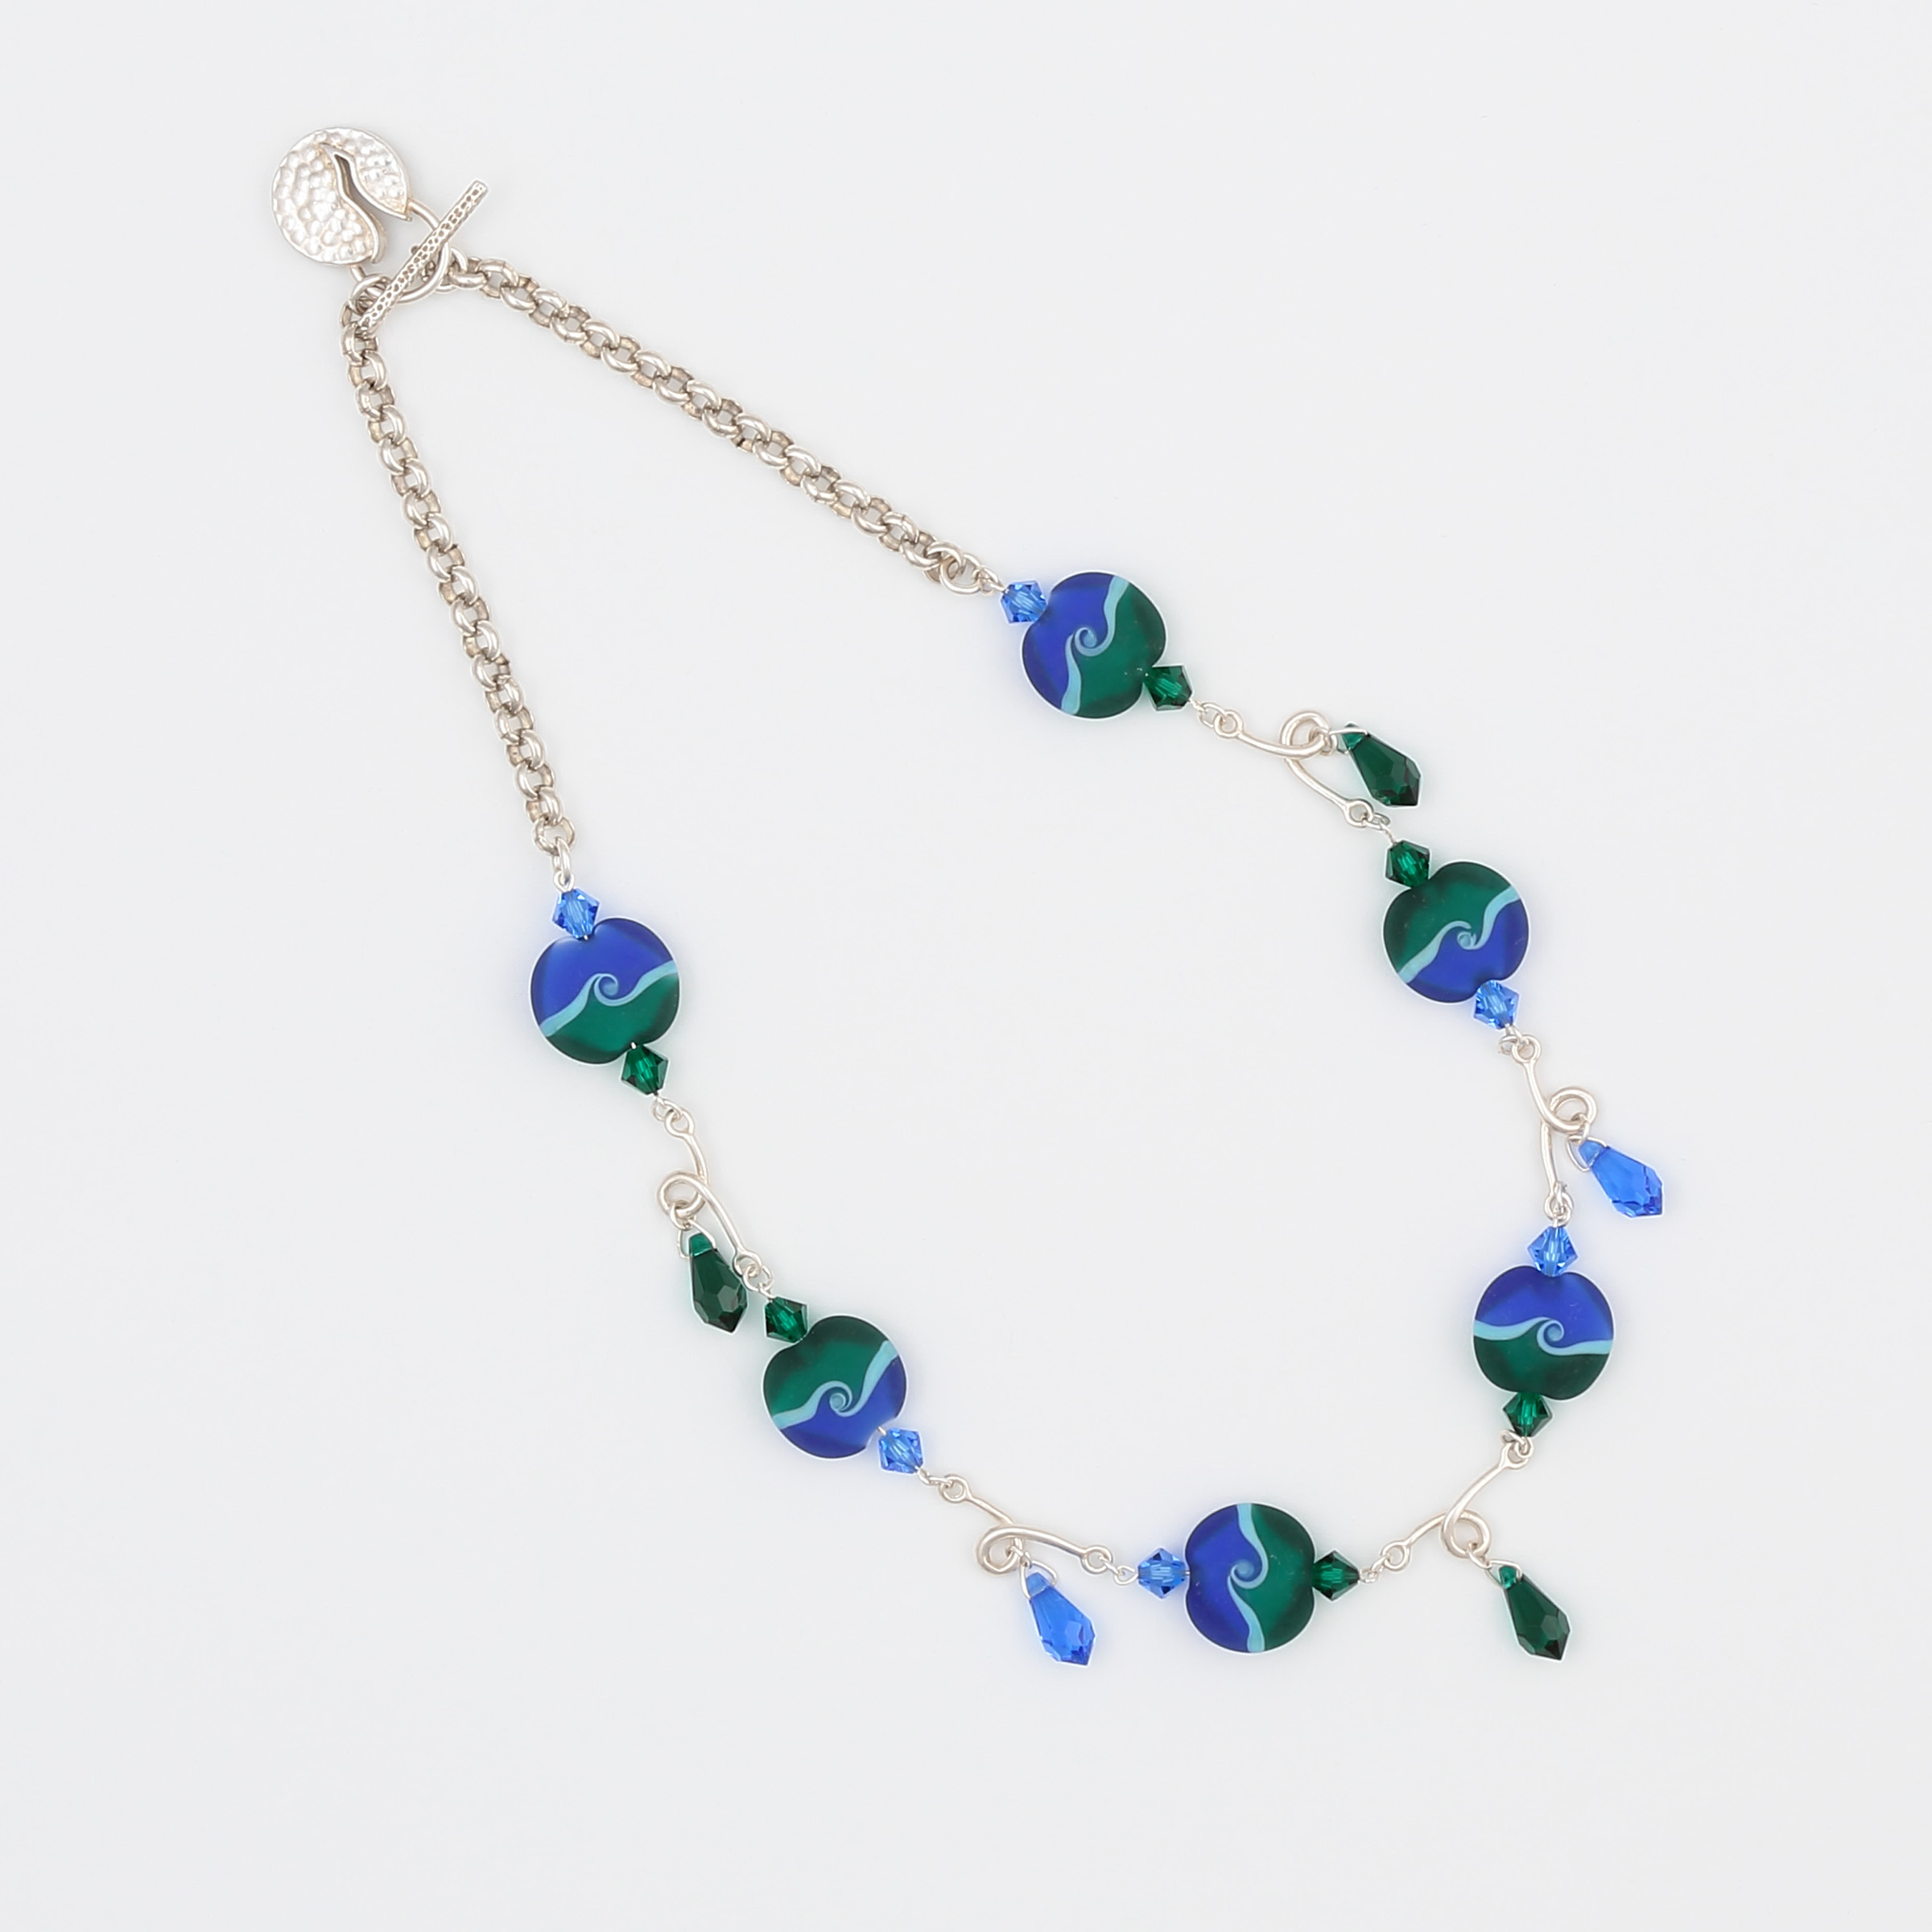 Blue, turquoise, green handmade sterling silver necklace with art glass and Swarovski crystals